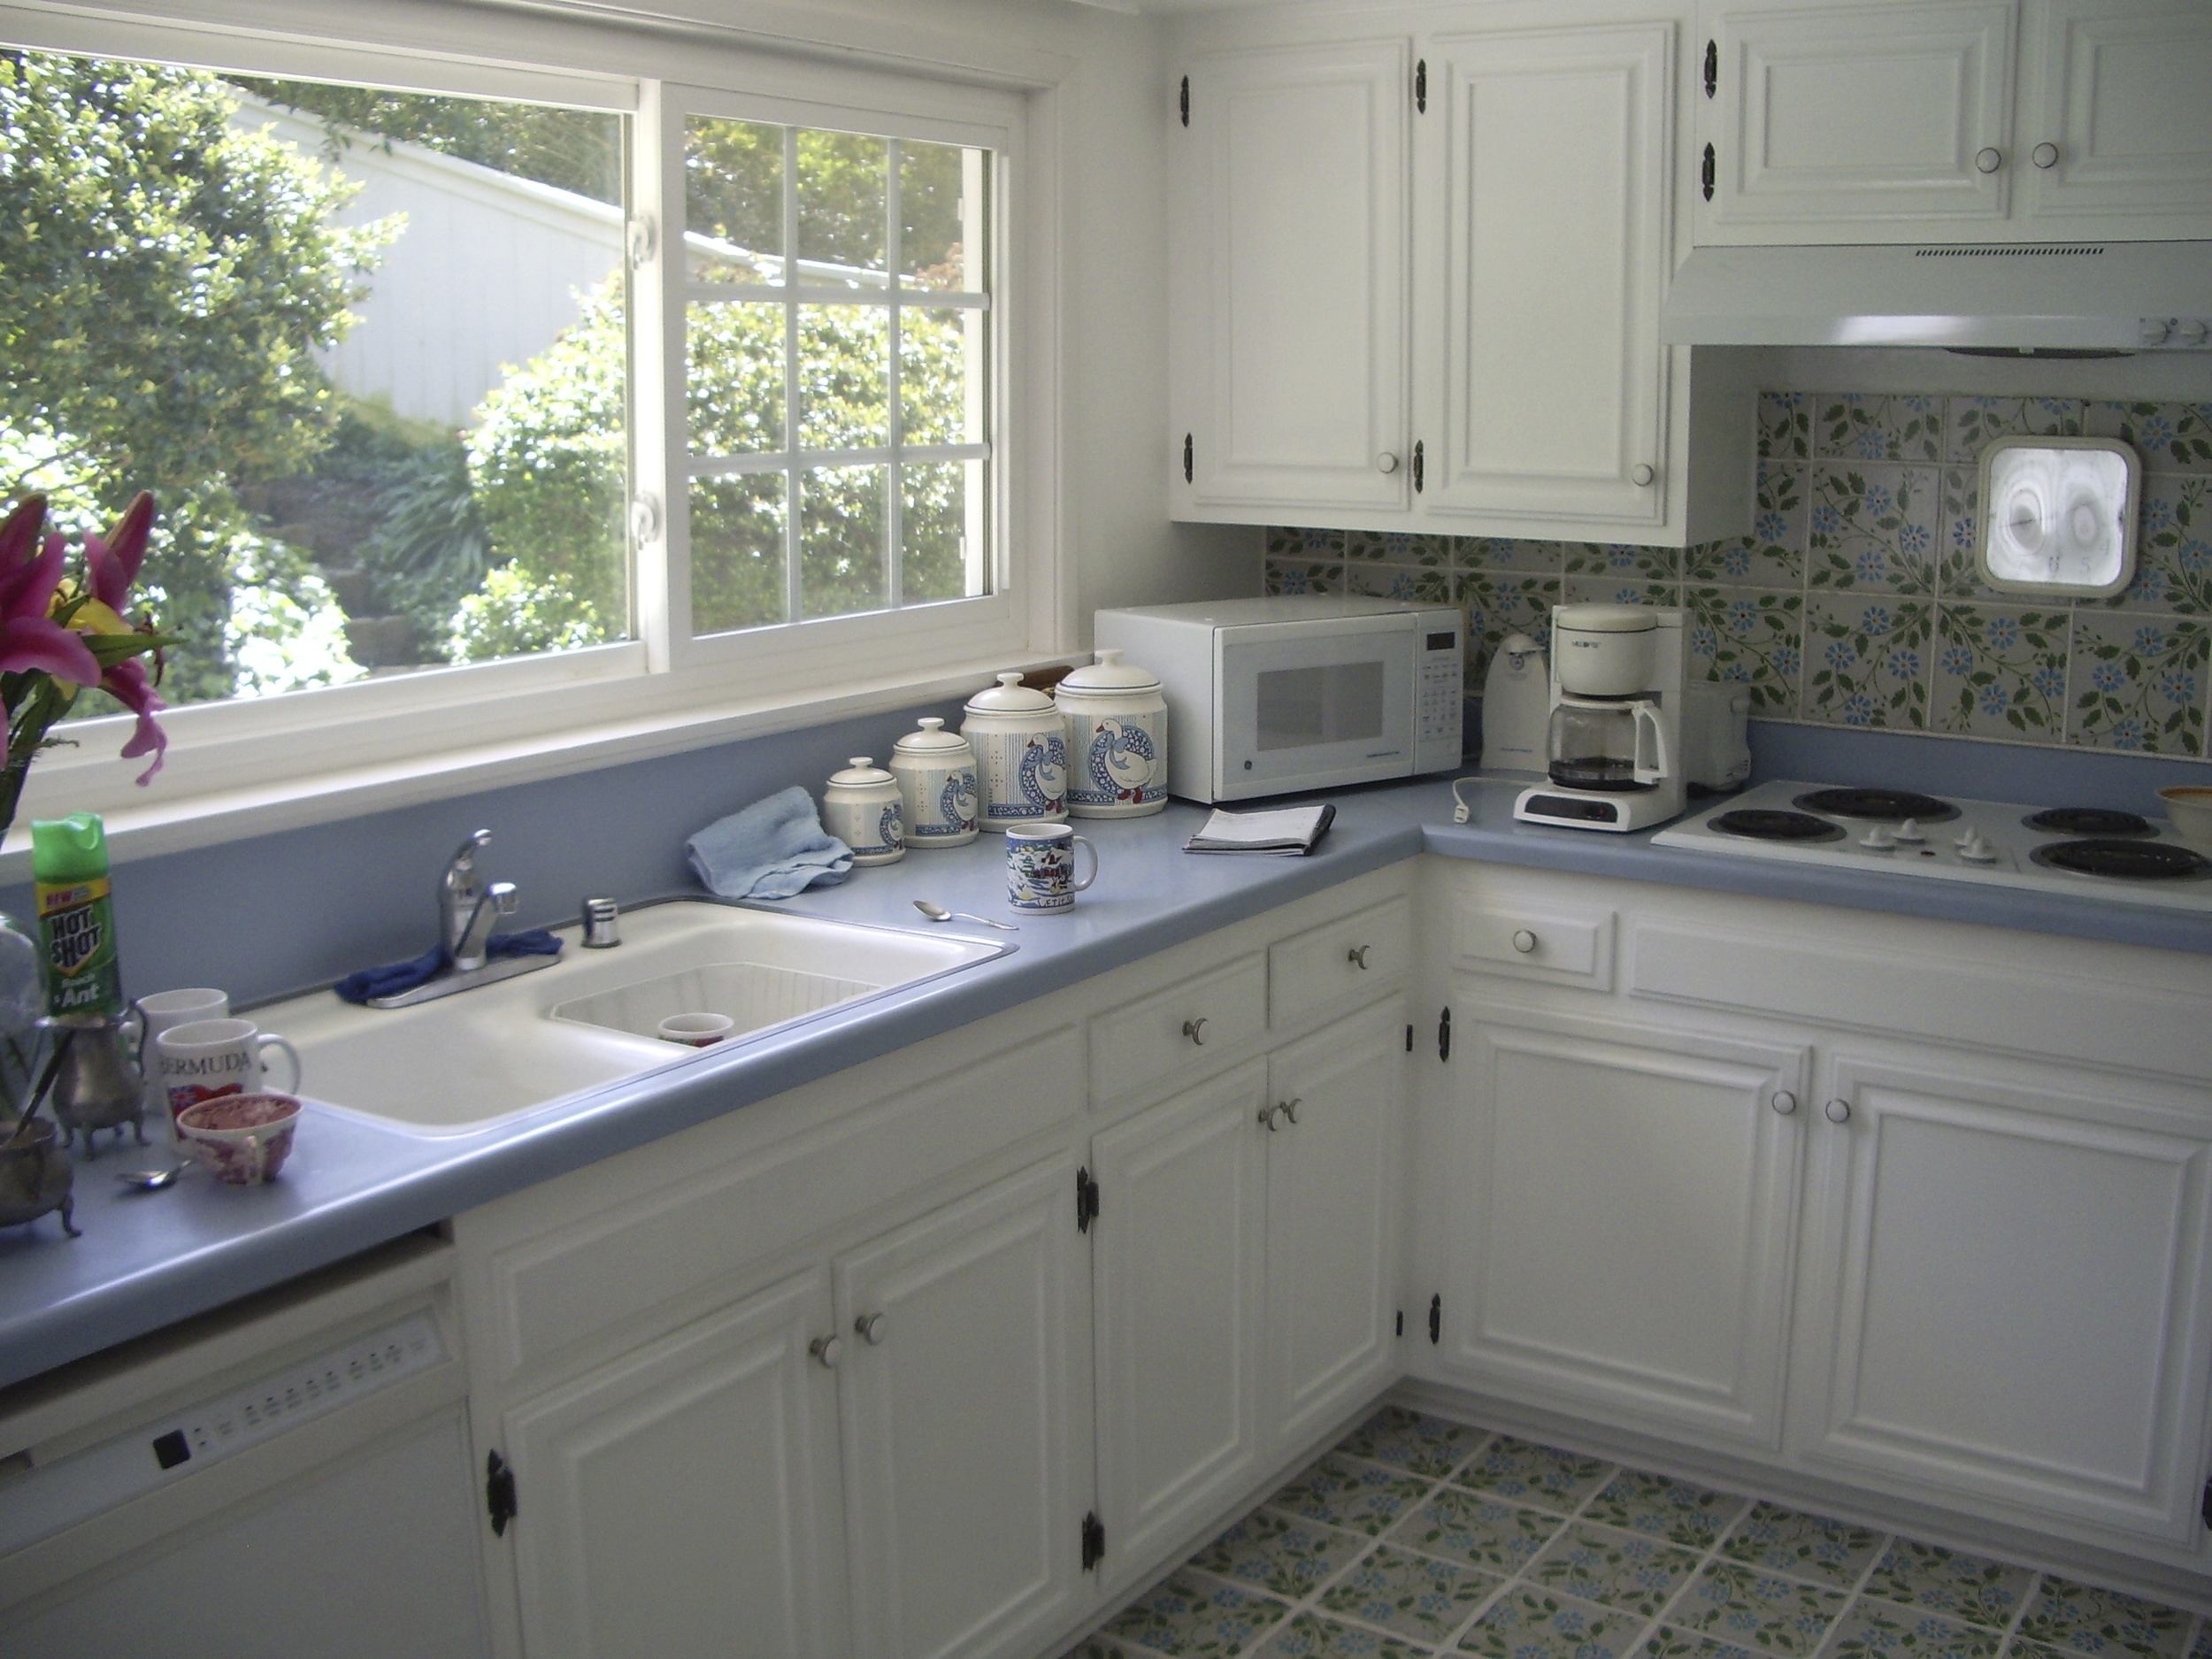 Before: Small kitchen with 7 foot ceiling height. All cabinets and finisheswere original 1960's.